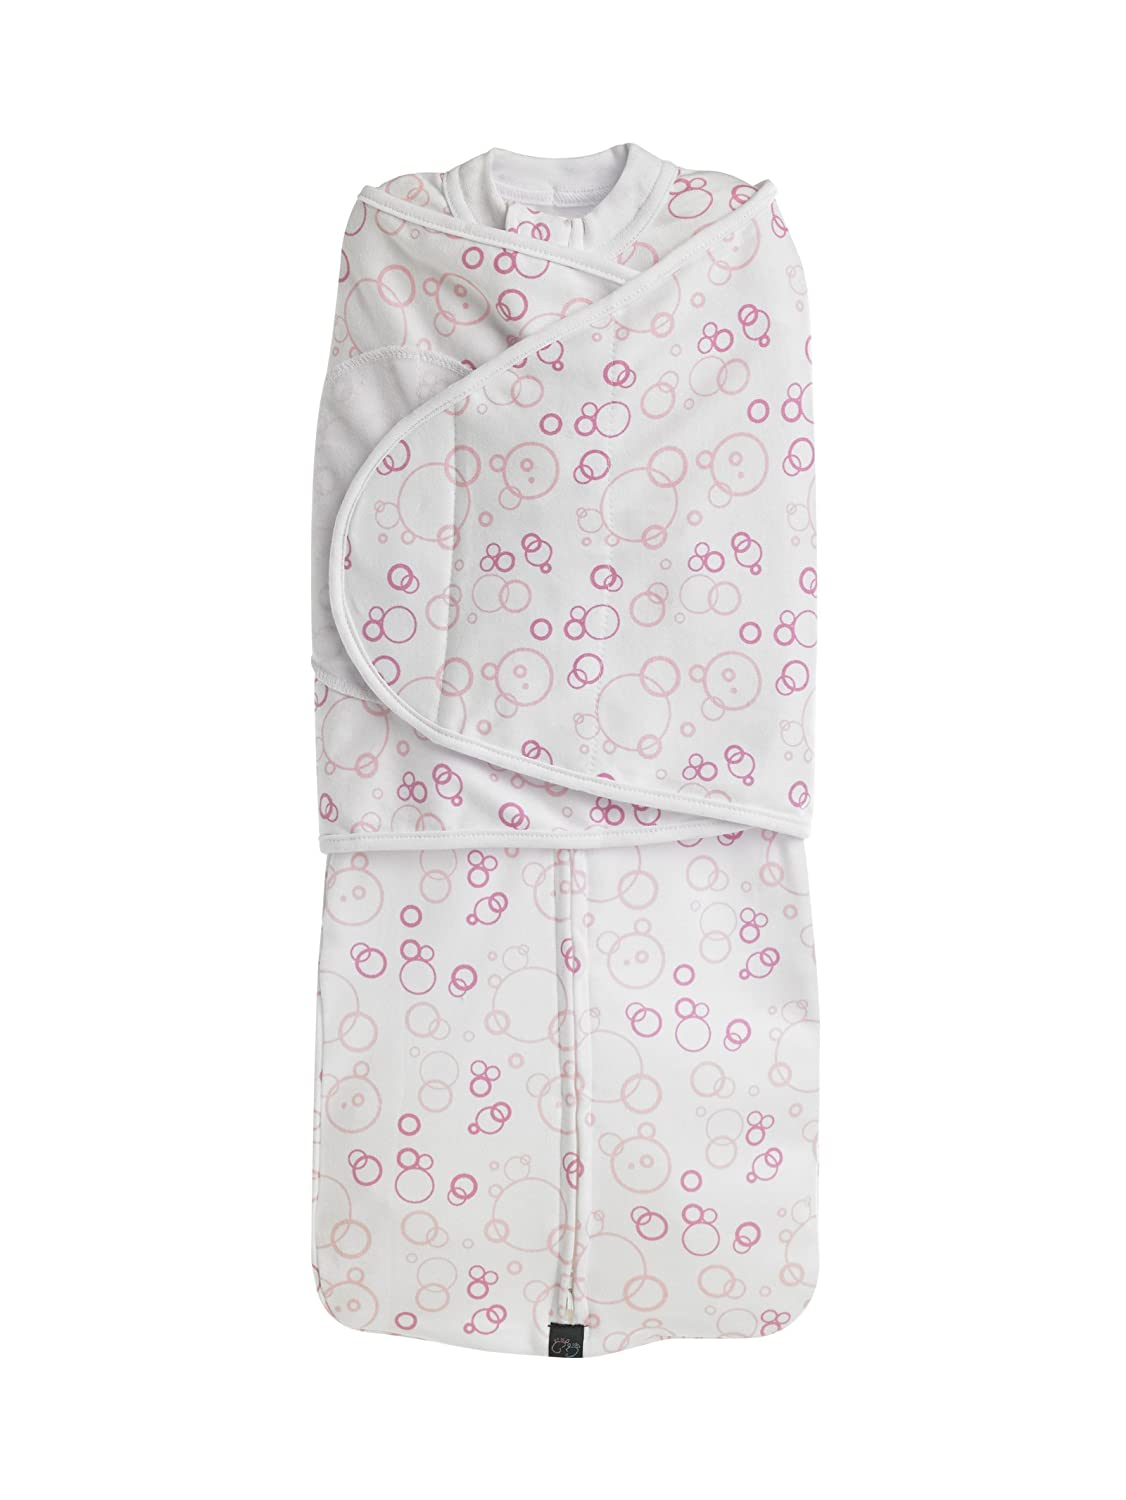 Mum2Mum Dream Swaddle Wrap SMALL- 100% Cotton - 7 - 14lbs (3.17– 6.35kg) - Pink Bubbles Baby Best Buys 16132